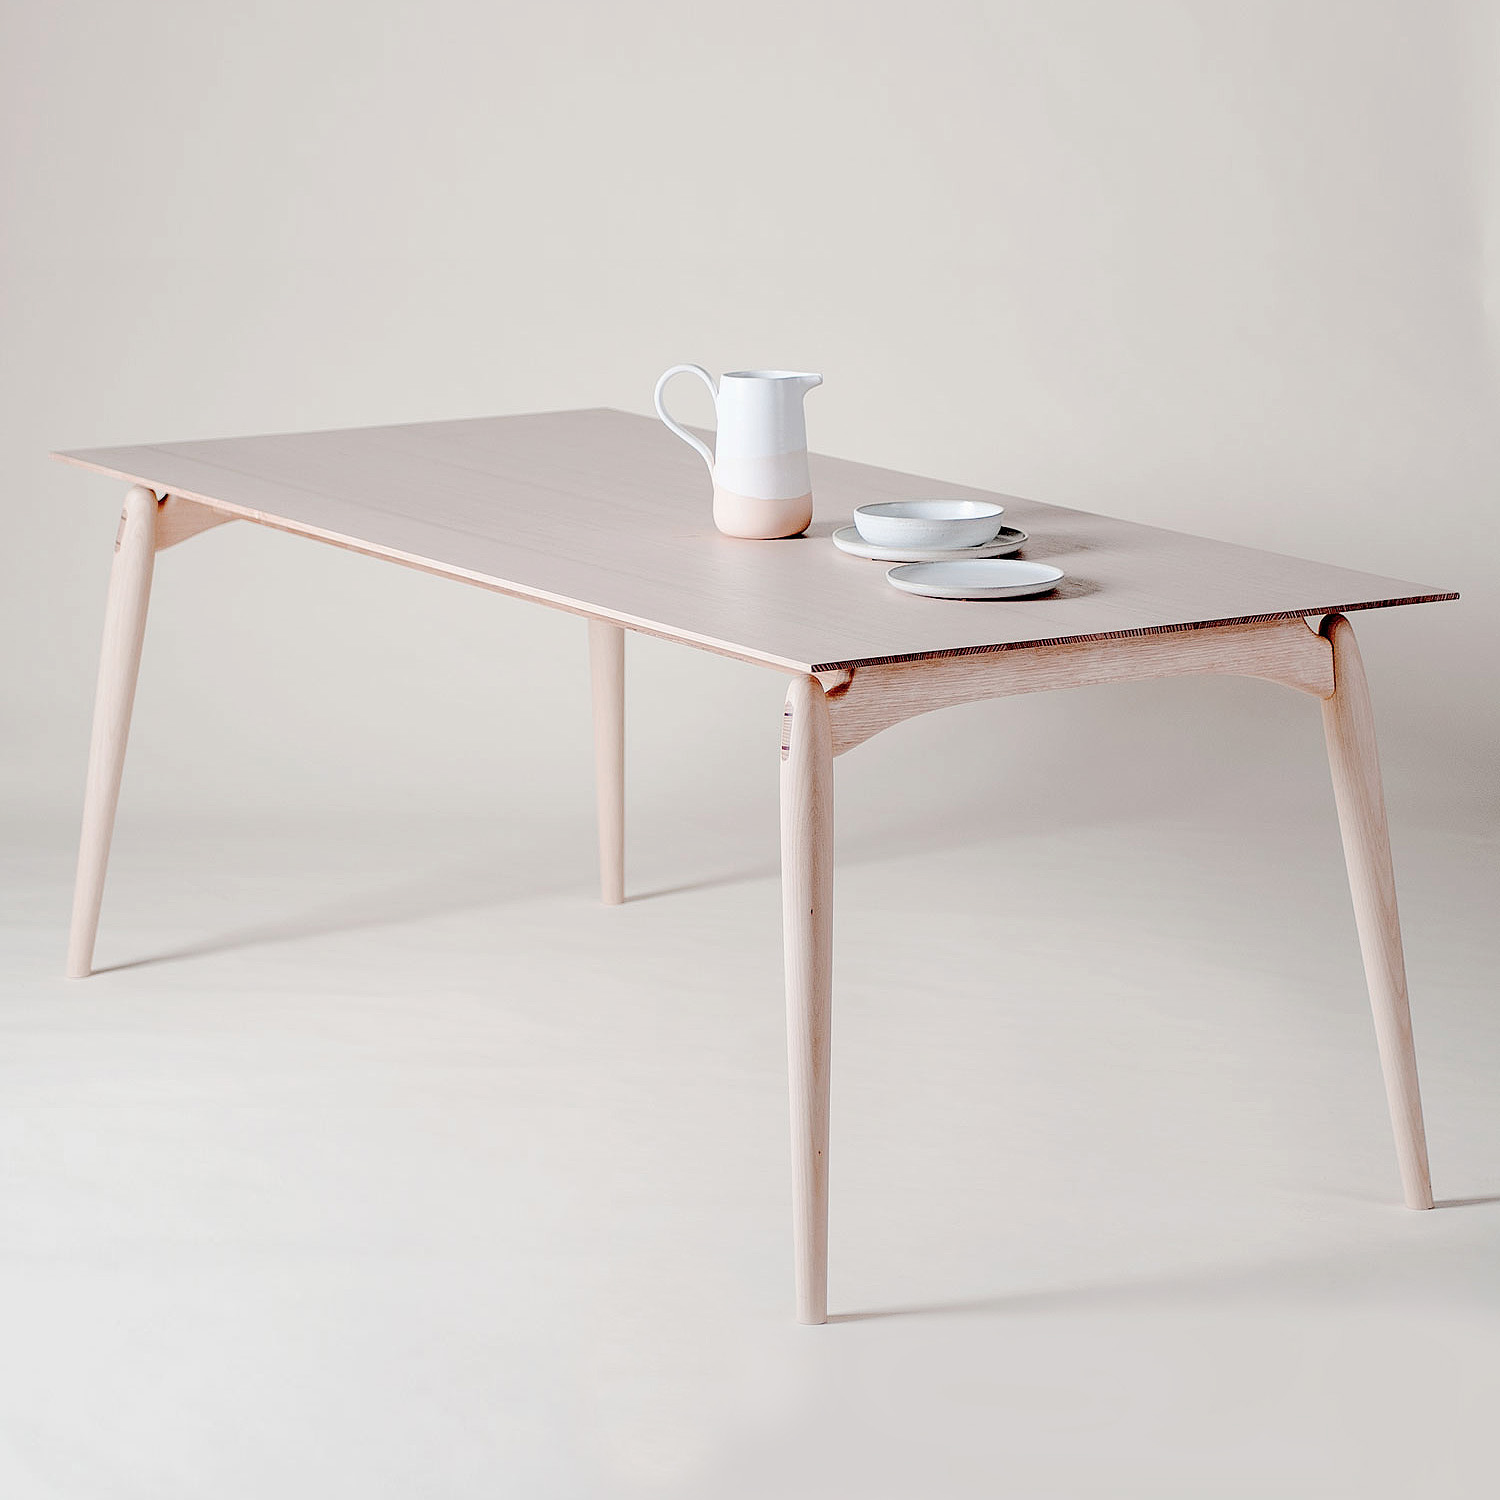 Winner, Vivid Furniture Design Prize 2014. Exhibited ICFF New York 2018.